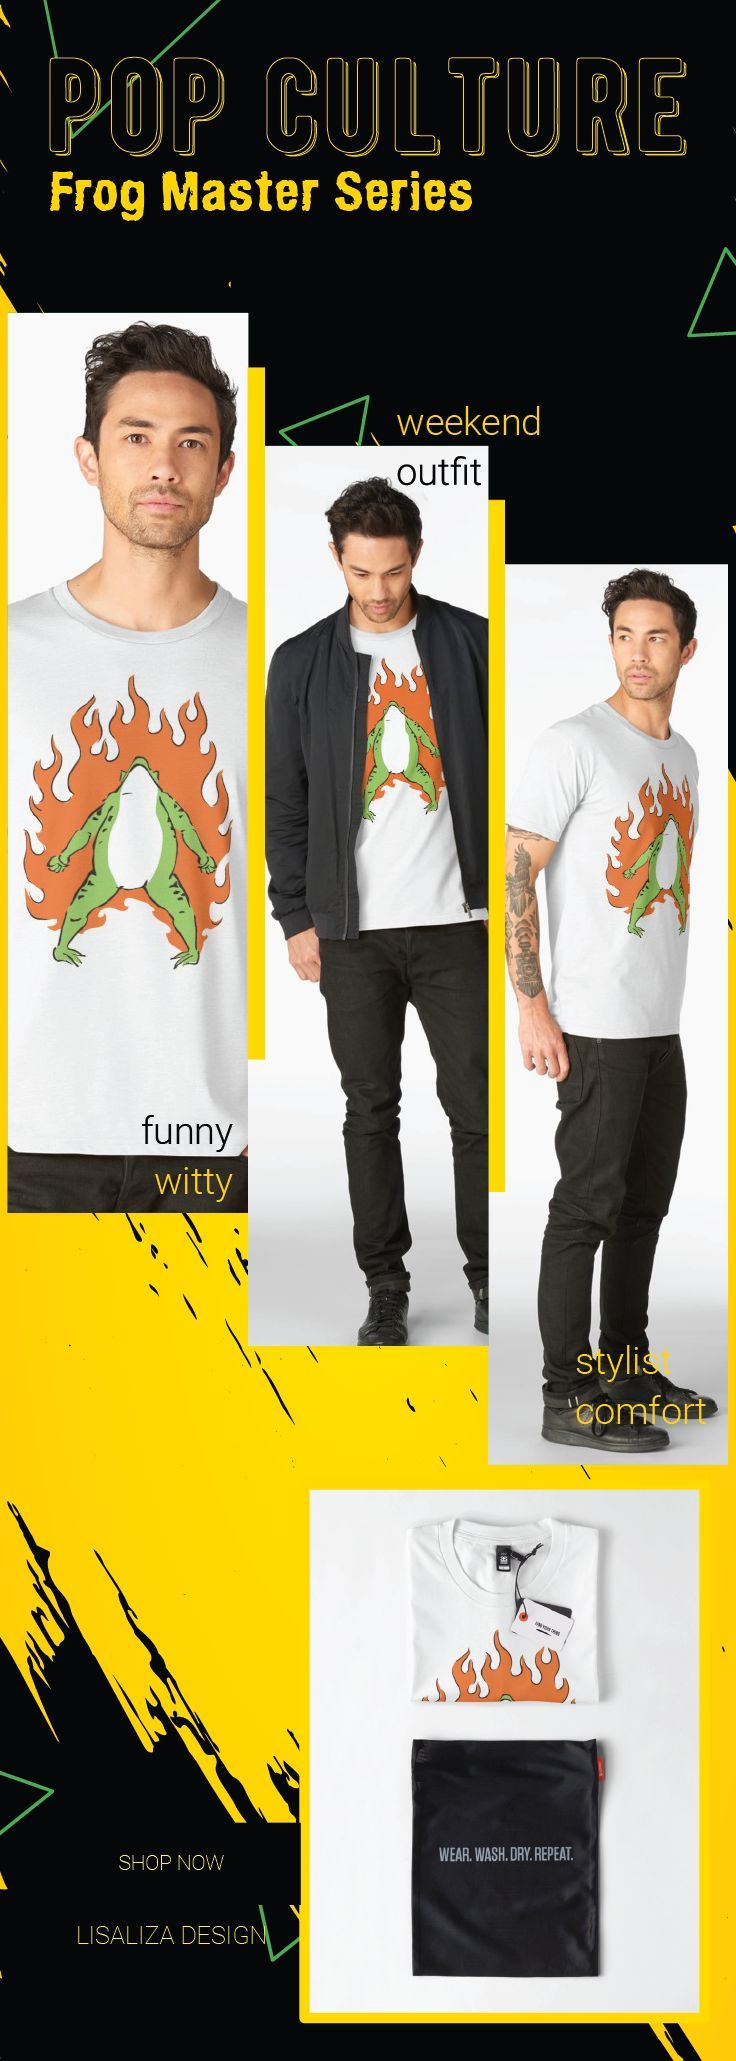 Men's Premium T-Shirt Frog Master - Beast Mode byLisaLiza Redbubble.   Get one today! Men's & Women's Sizes available.   Check out our full catalog for tons of funny ,witty & cool pop culture inspired t shirt   #PopCulture #ForTeens #Teens #Cool #Funny #Witty #Gifts #FrogMaster #RedbubbleMen   #Lisaliza #Frog #Redbubble #tumblr #Pet